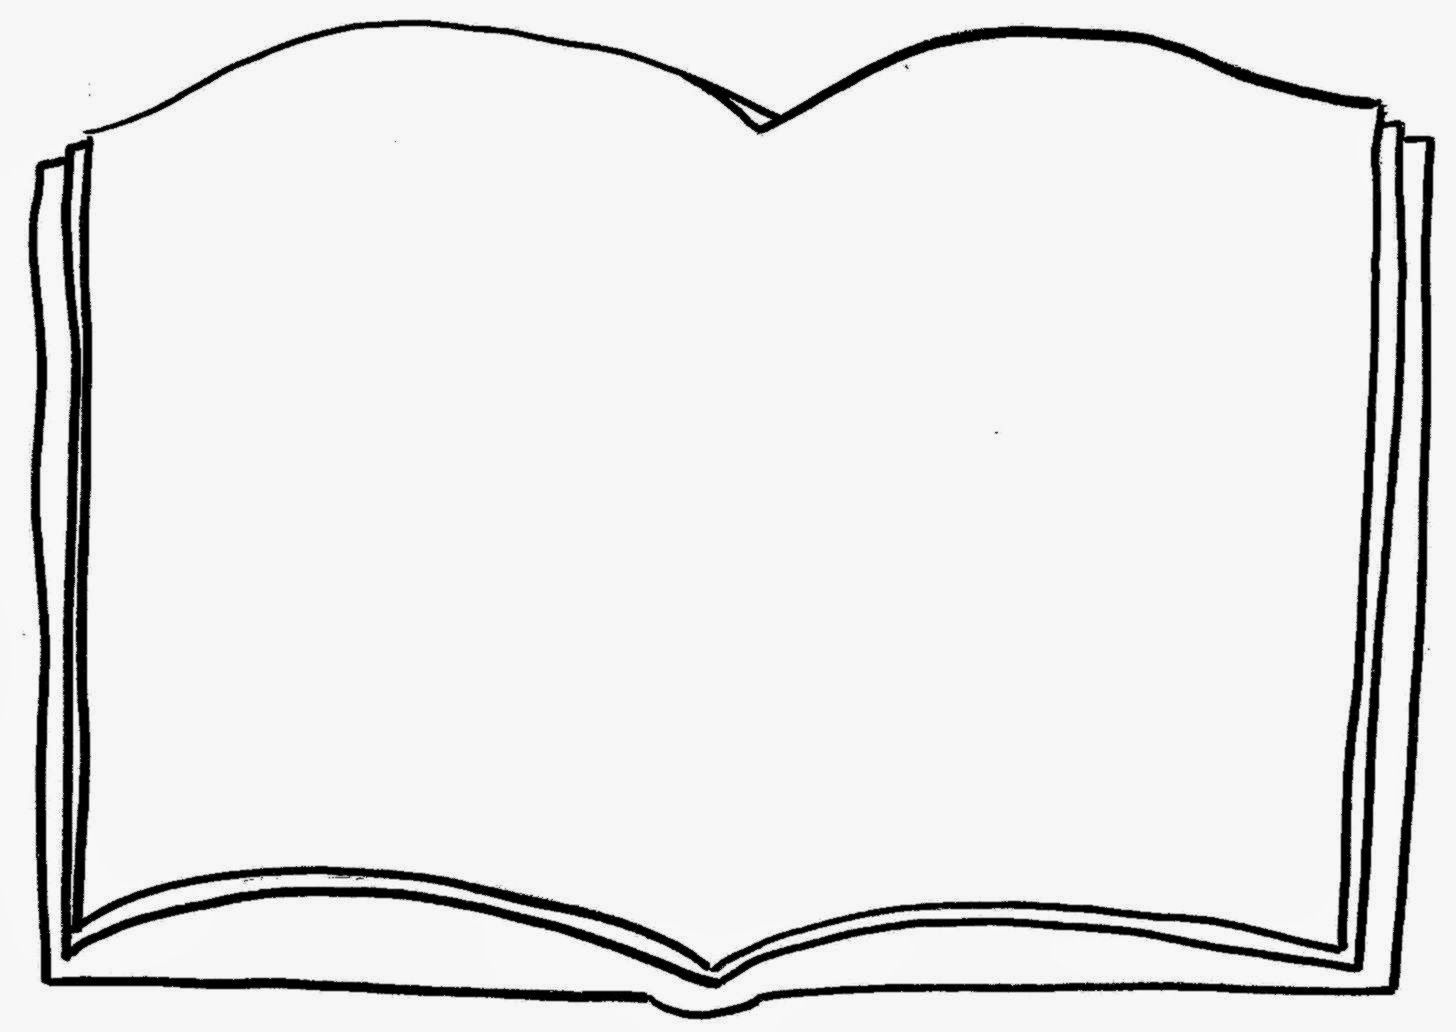 Open Book Coloring Page Free Coloring Pages Clip Art Coloring Books Coloring Pages Book Clip Art